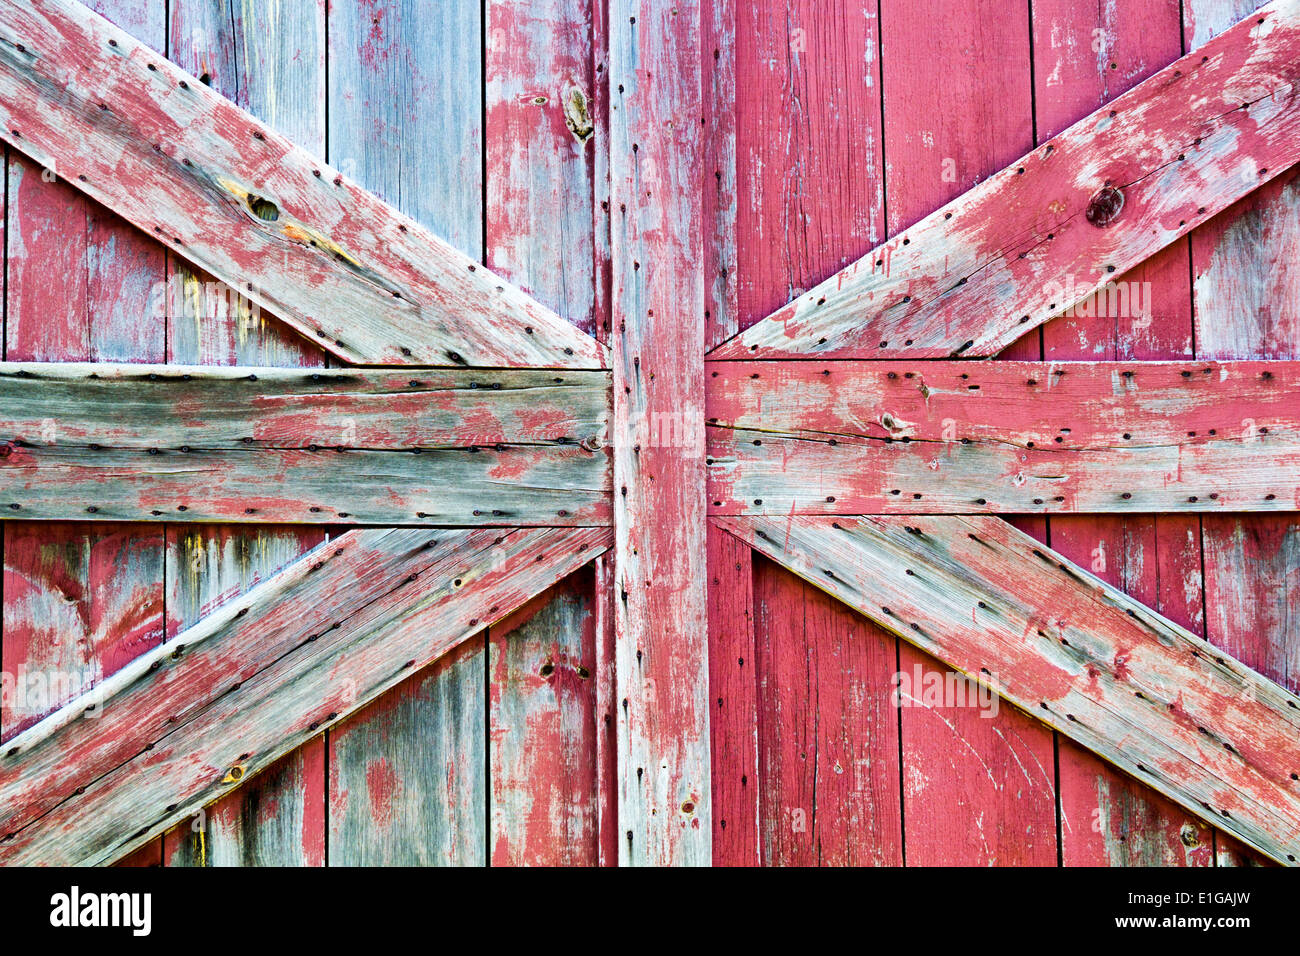 close-up-of-barn-door-with-worn-wood-and-paint-E1GAJW.jpg